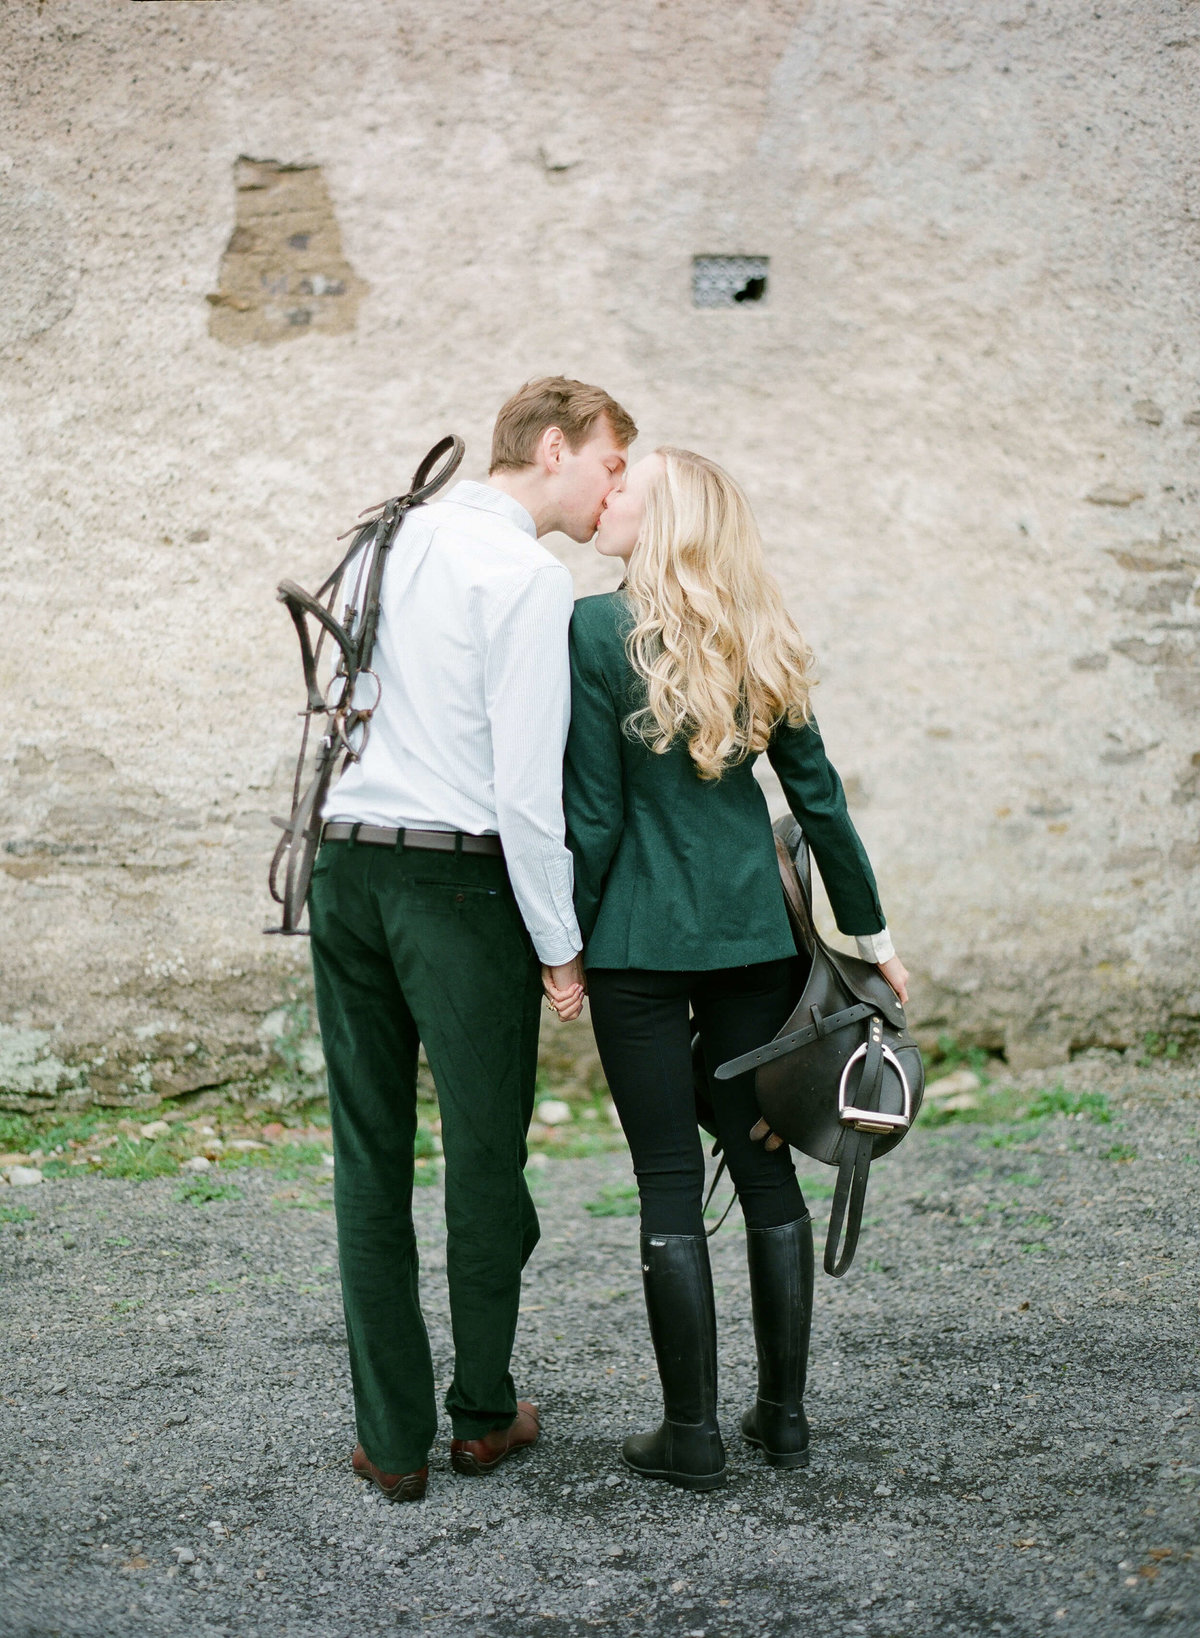 82-KTMerry-destination-weddings-couple-horse-saddle-Ireland